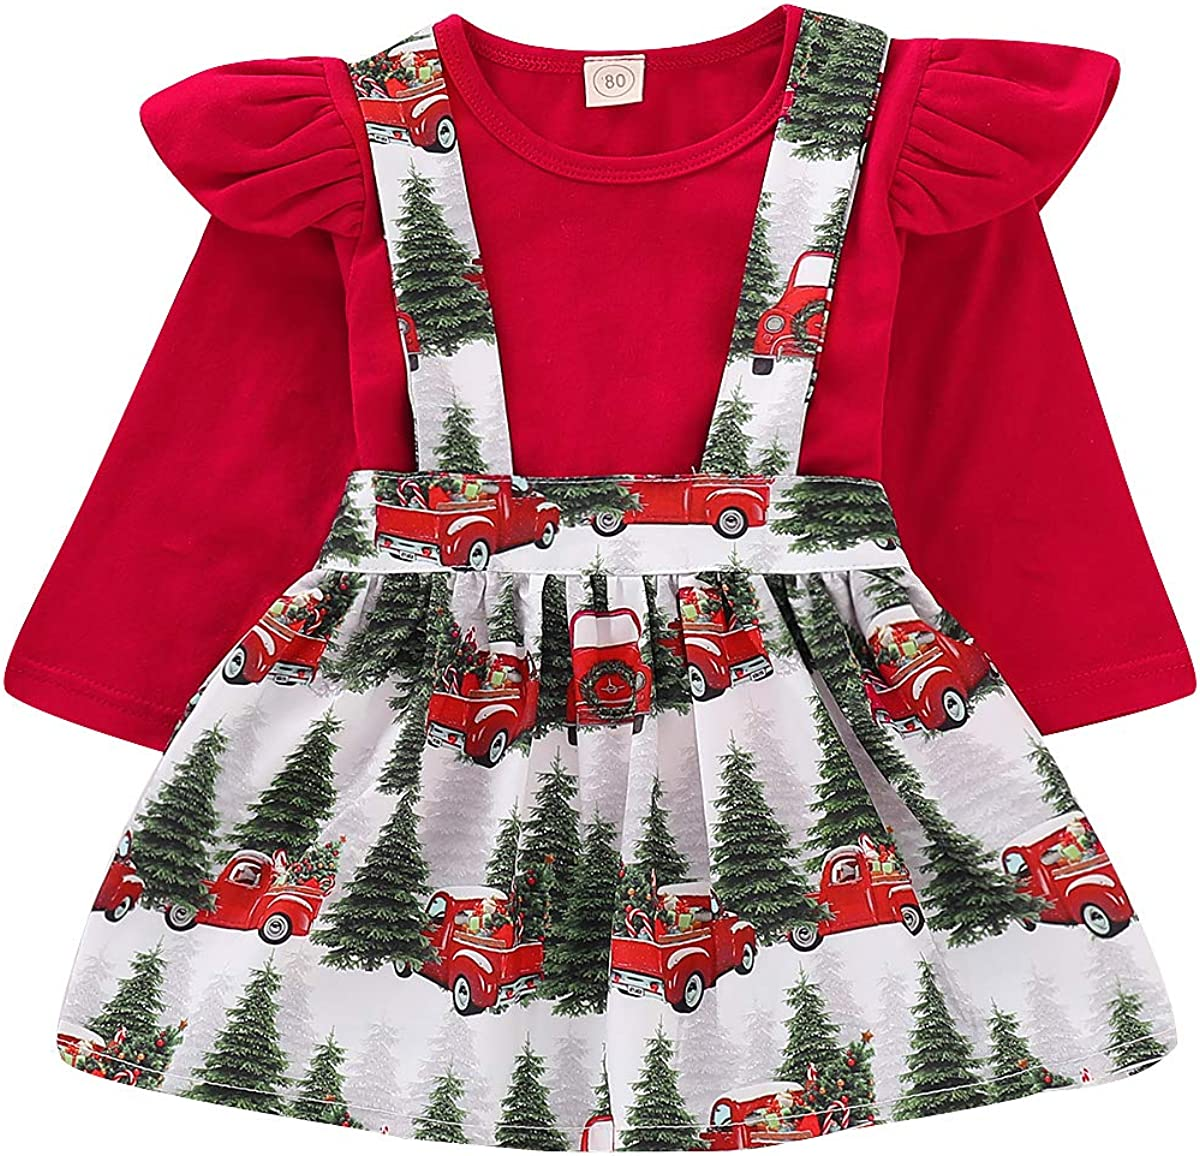 GObabyGO Toddler Baby Girl Infant Plain T Shirts Plaid Overall Skirt Set Cotton Outfits